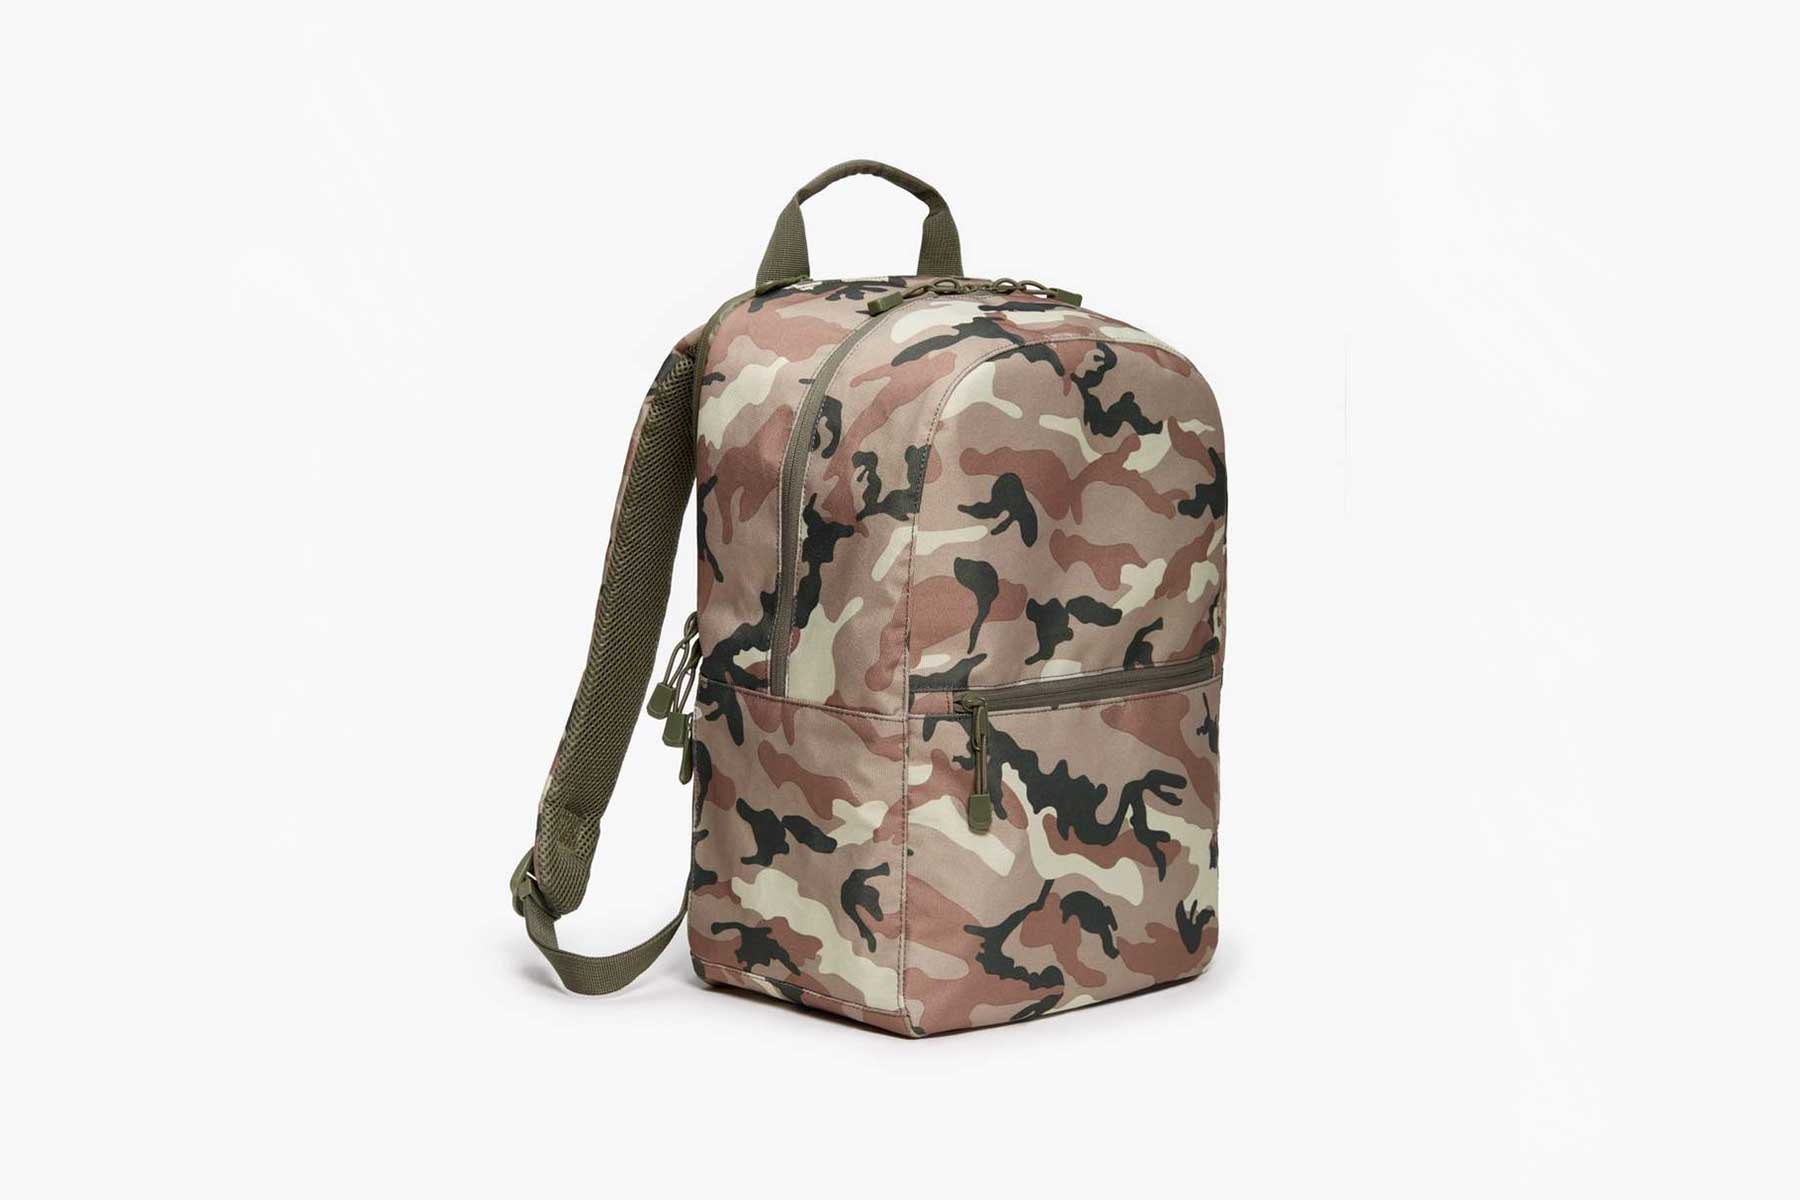 Lo & Sons Havonver 2 backpack in tan camo